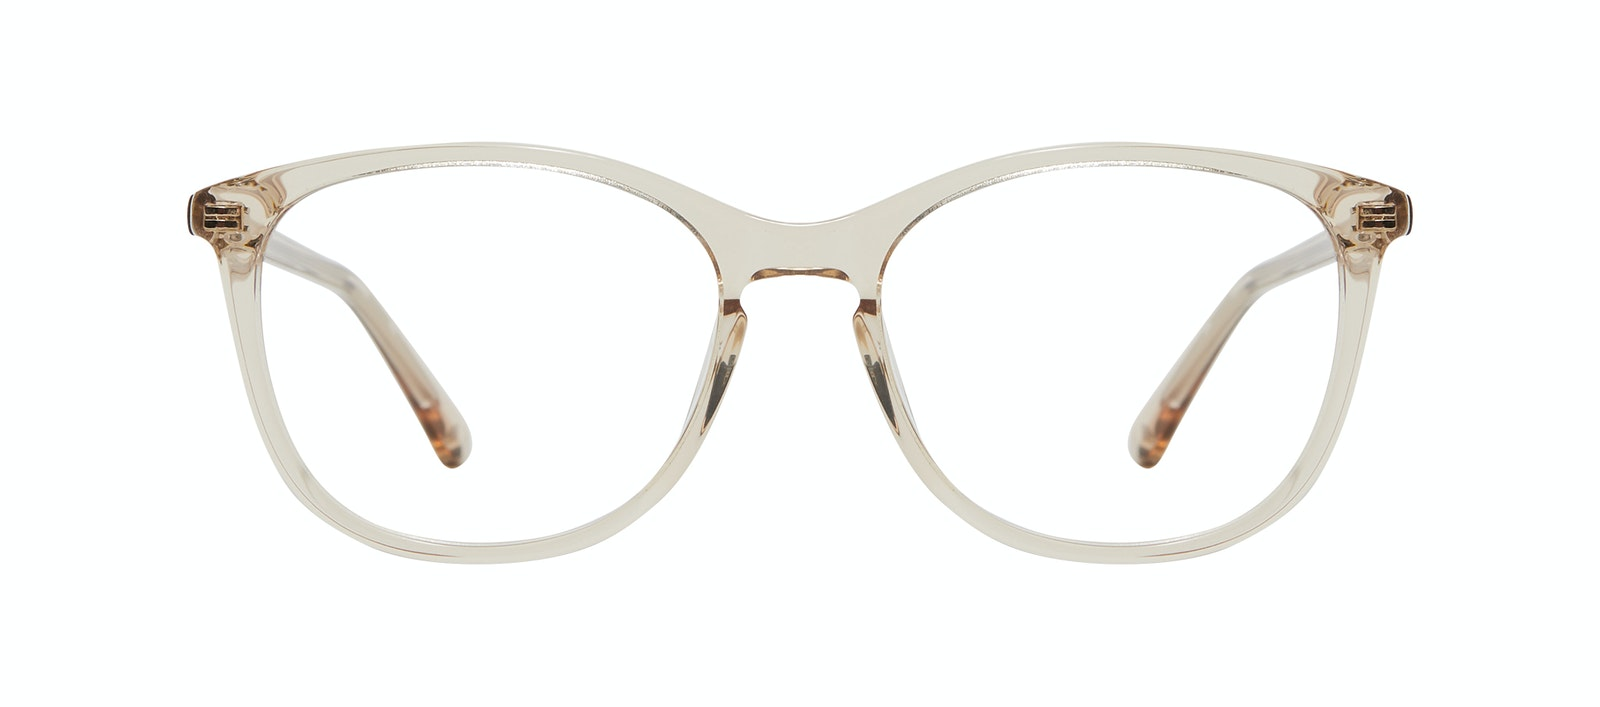 Affordable Fashion Glasses Rectangle Square Round Eyeglasses Women Nadine M Prosecco Front